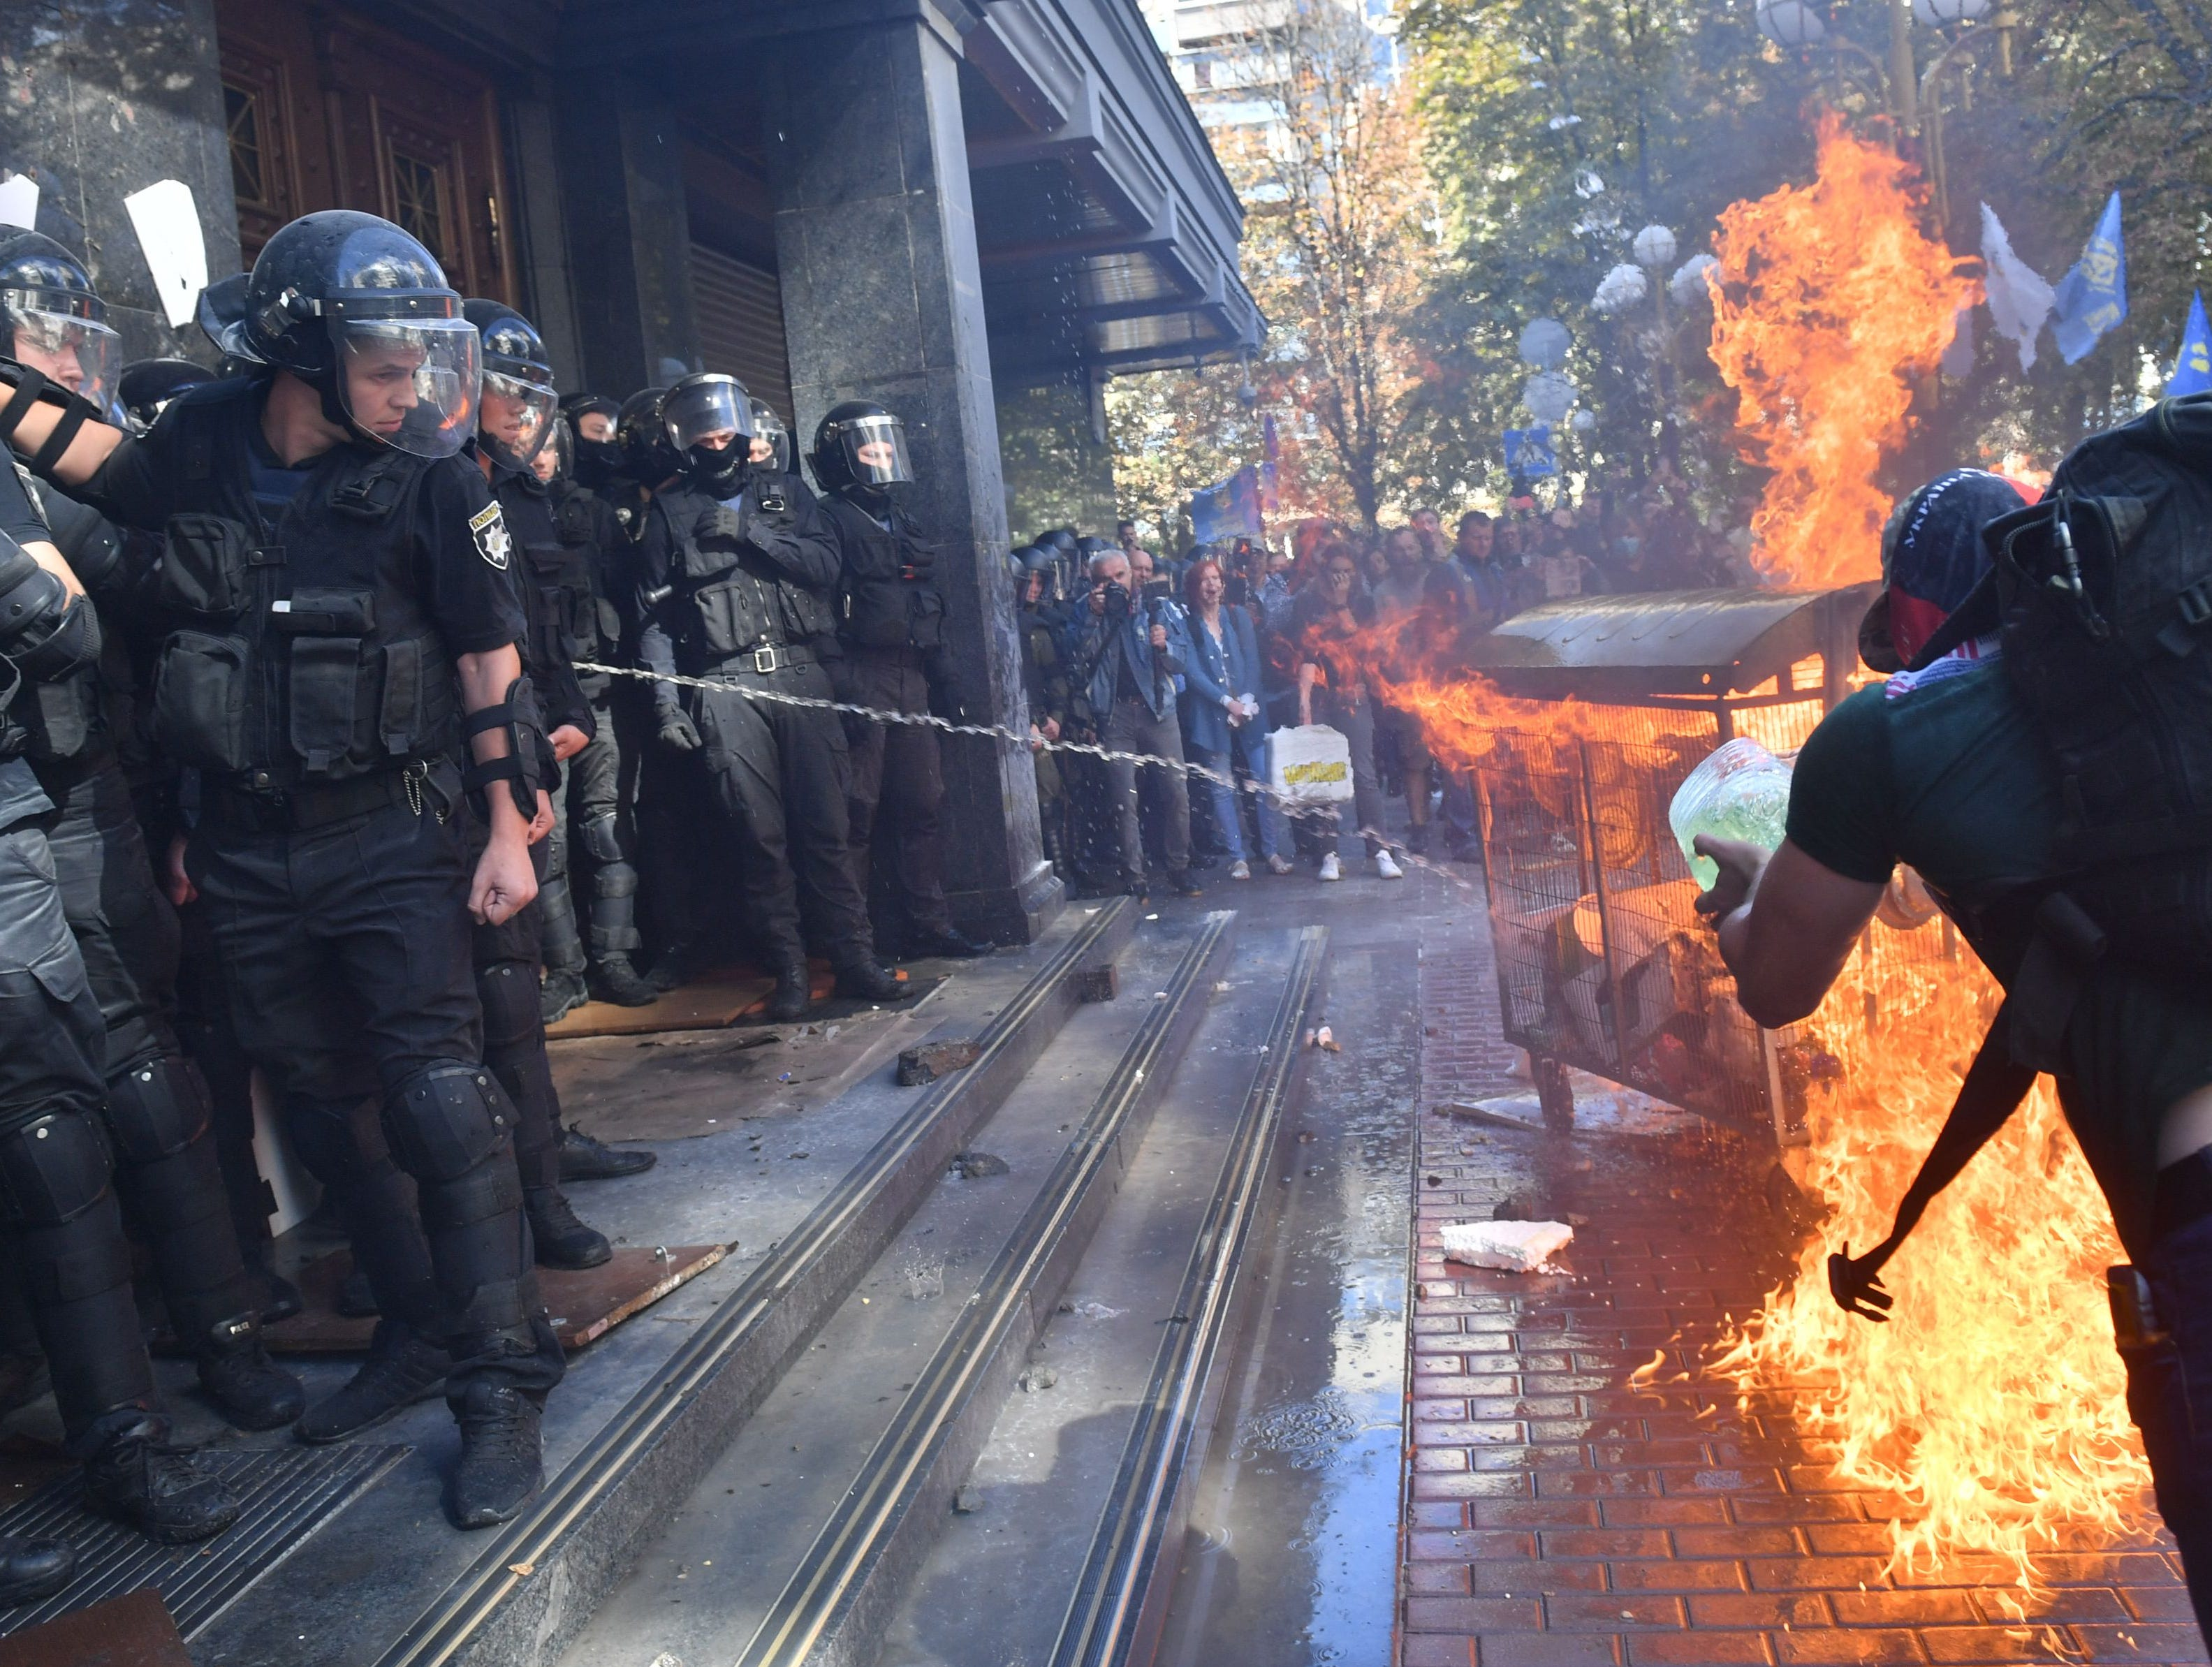 Activists of Ukrainian far-right groups burn a fire during their clashing with riot police in front of the Prosecutor General's Office in Kiev on September 17, 2018 as the Ukrainian authorities extradited a Russian citizen wanted by Moscow as a suspected Islamic State fighter.